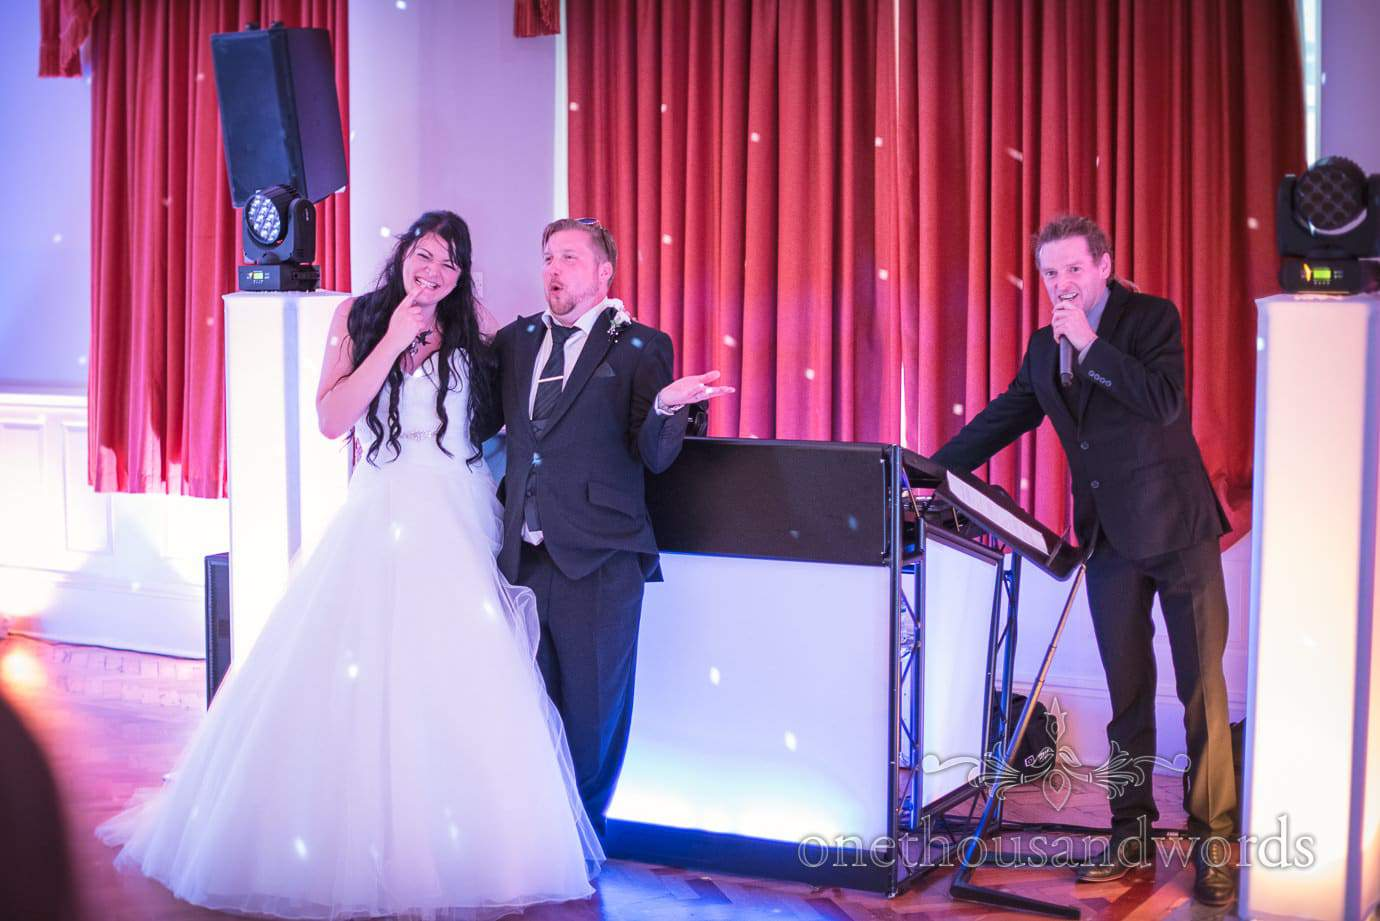 Mr and Mrs quiz at Black and White themed rock and roll wedding at Haven Hotel